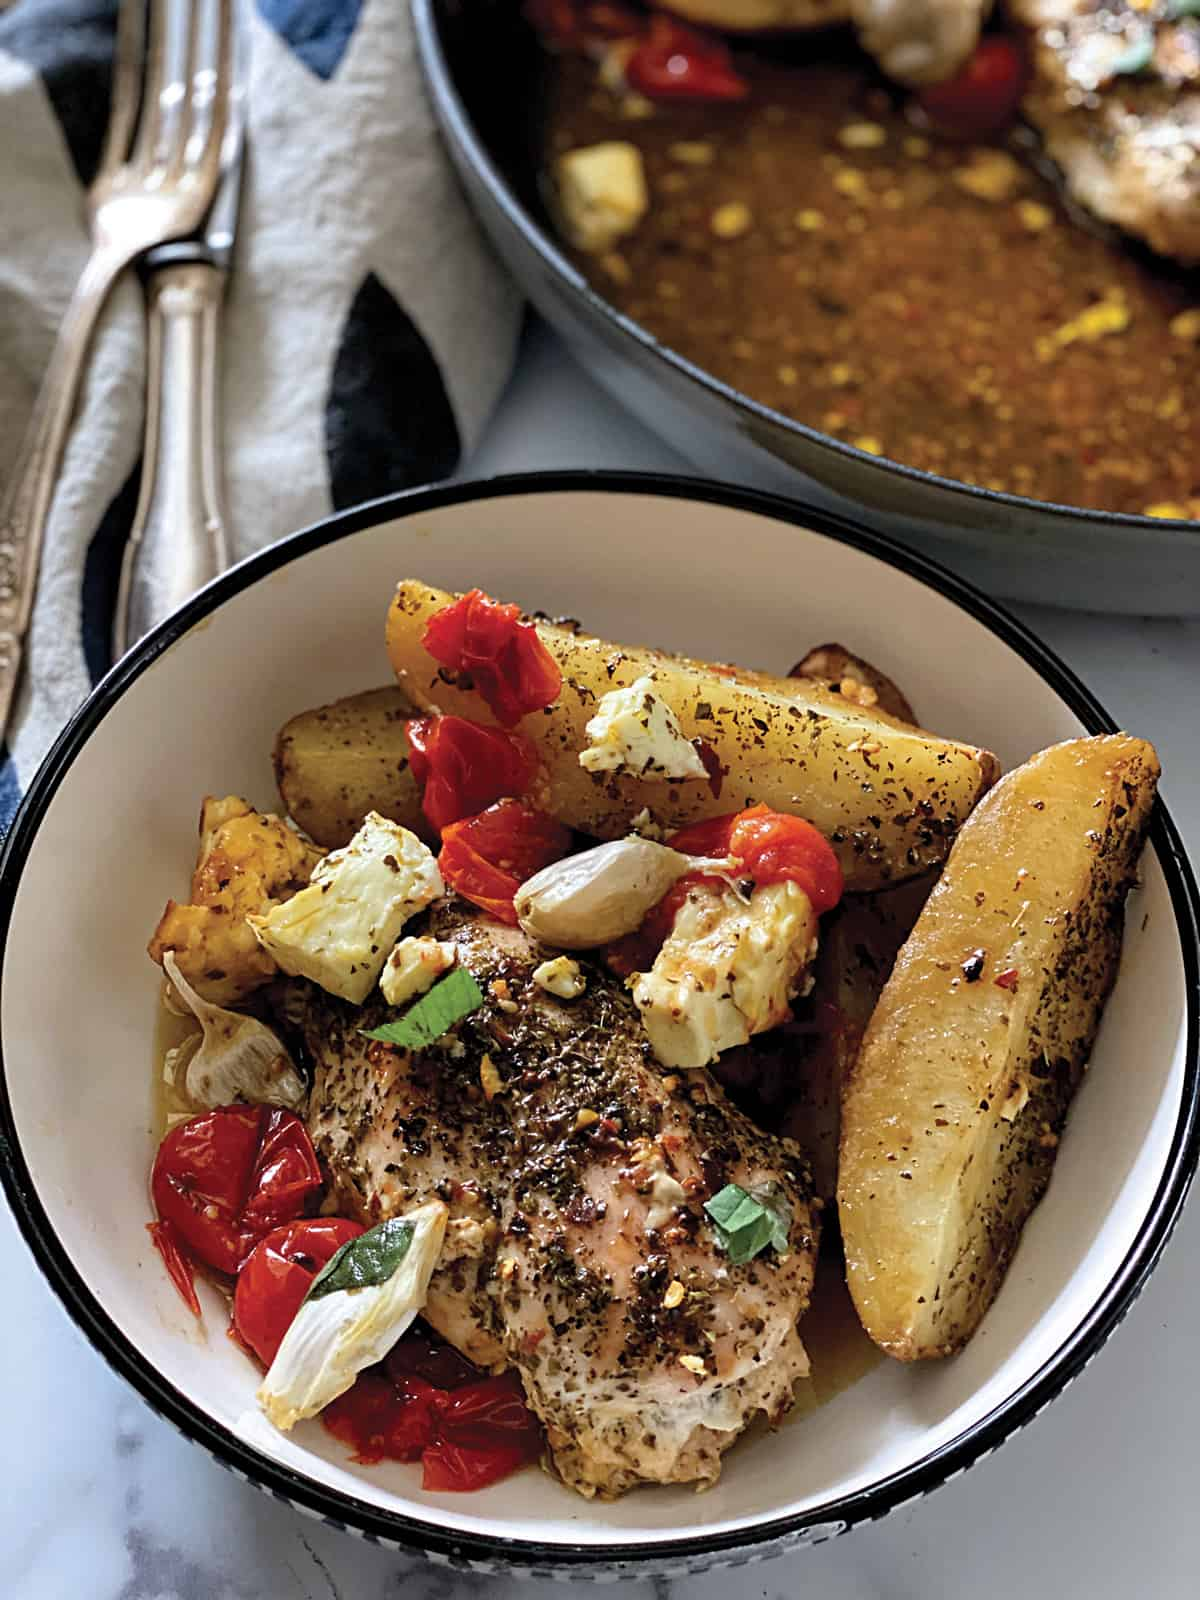 A plate with a baked chicken breast with herbs, potato wedges, roasted cherry tomatoes and pieces of feta cheese and garlic.